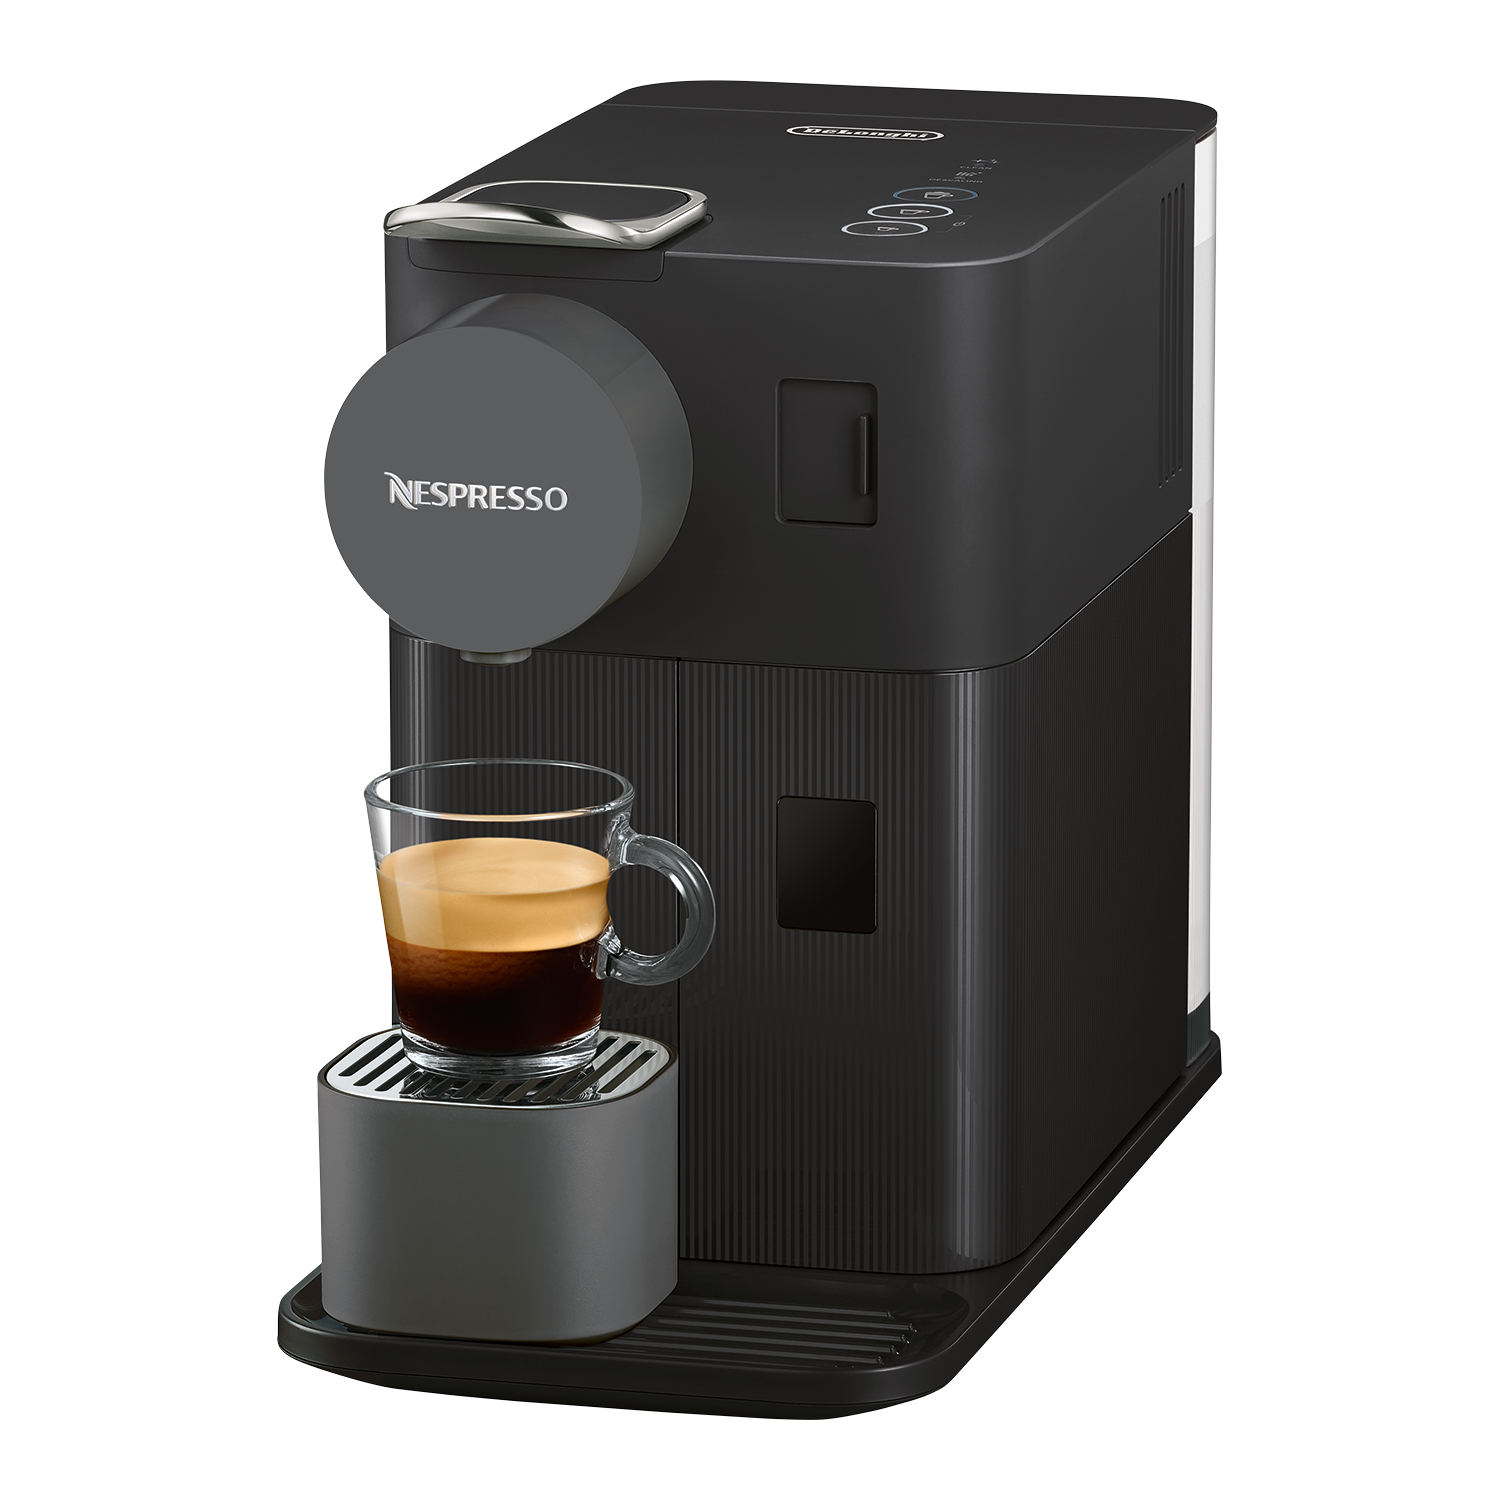 Nespresso Lattissima One EN 500 Kapselmaschine, Black